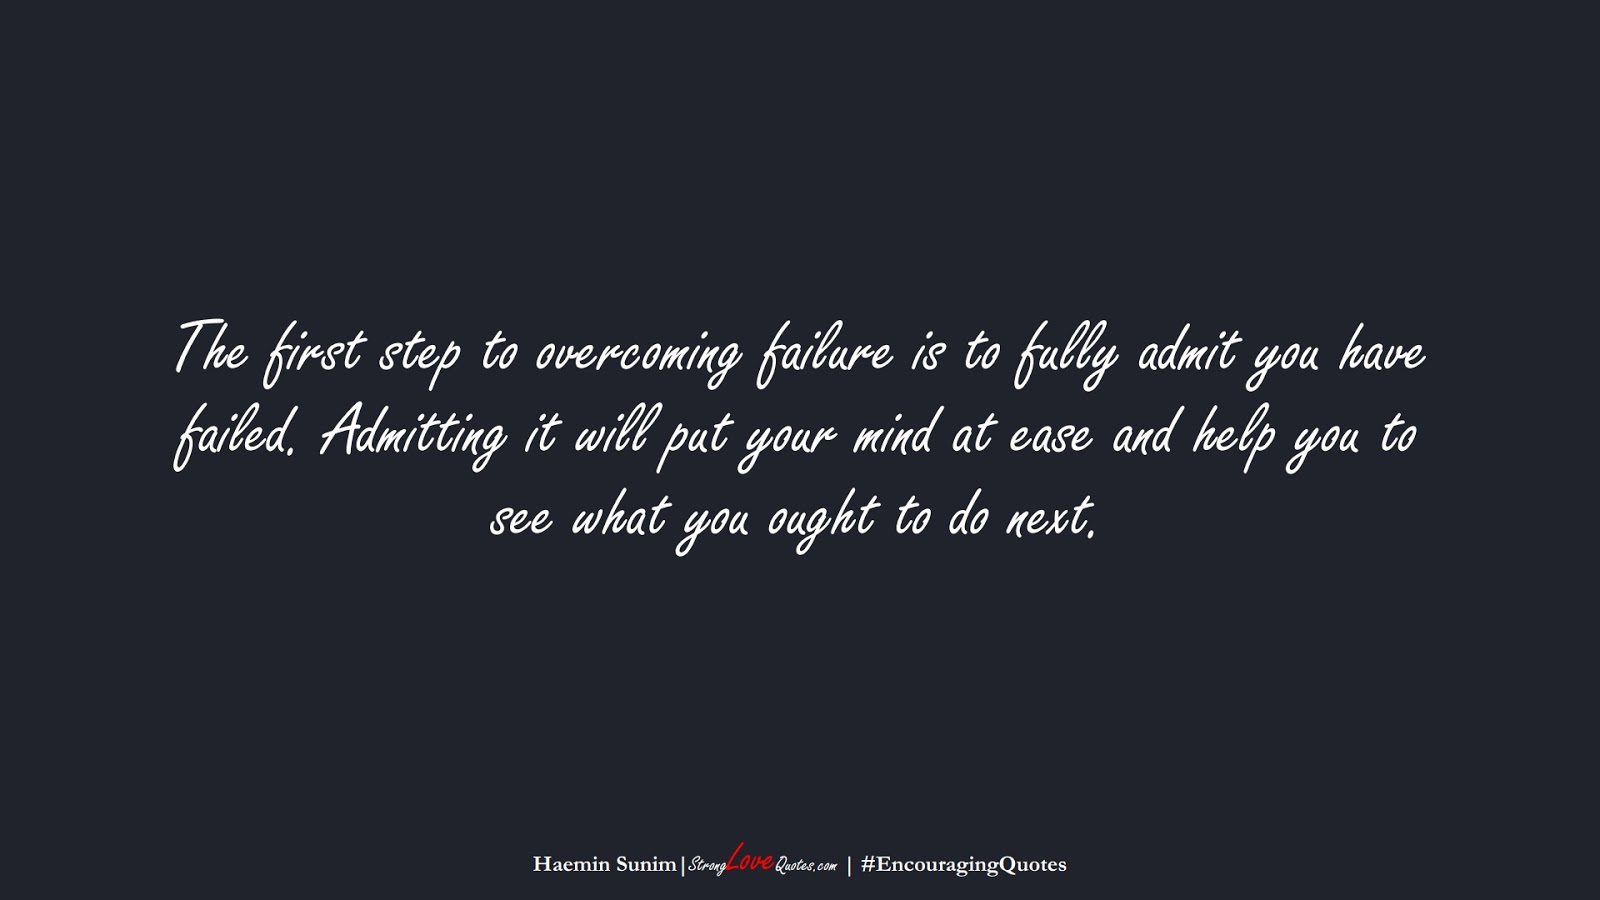 The first step to overcoming failure is to fully admit you have failed. Admitting it will put your mind at ease and help you to see what you ought to do next. (Haemin Sunim);  #EncouragingQuotes